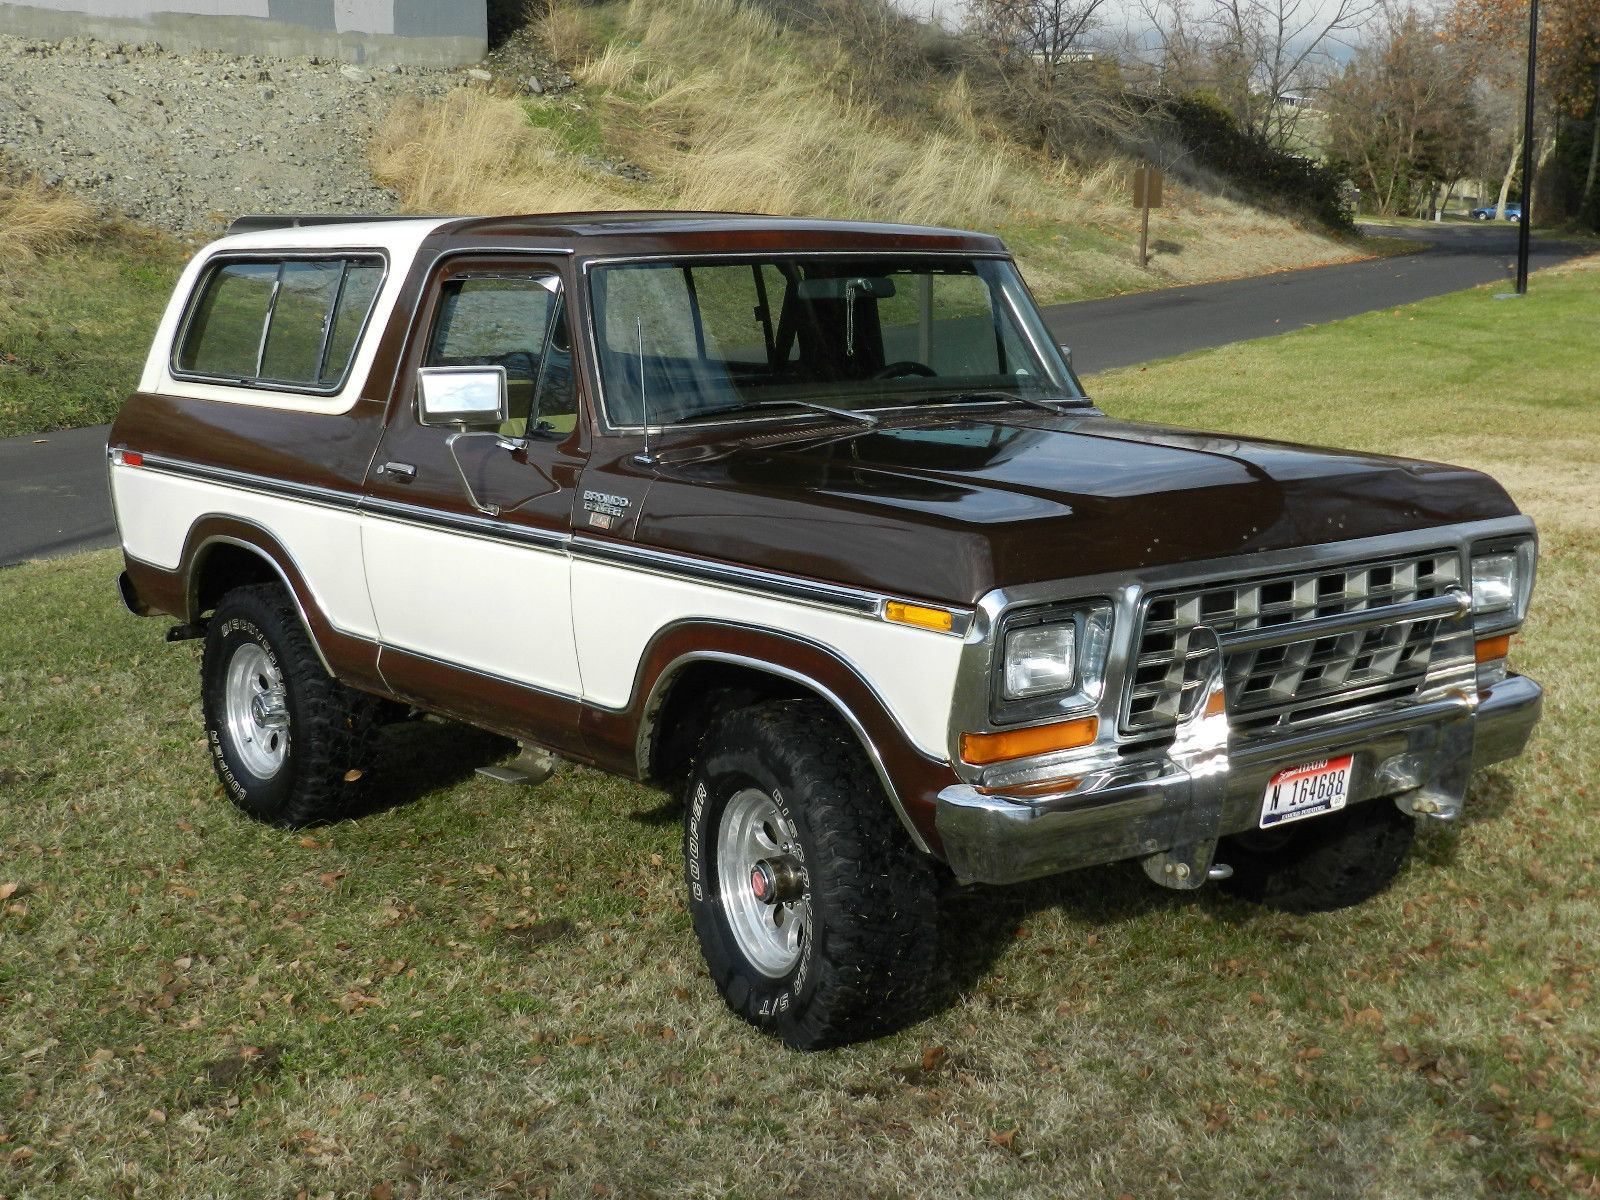 1979 ford bronco f150 4x4 xlt rare orignal paint and body classic a. Cars Review. Best American Auto & Cars Review